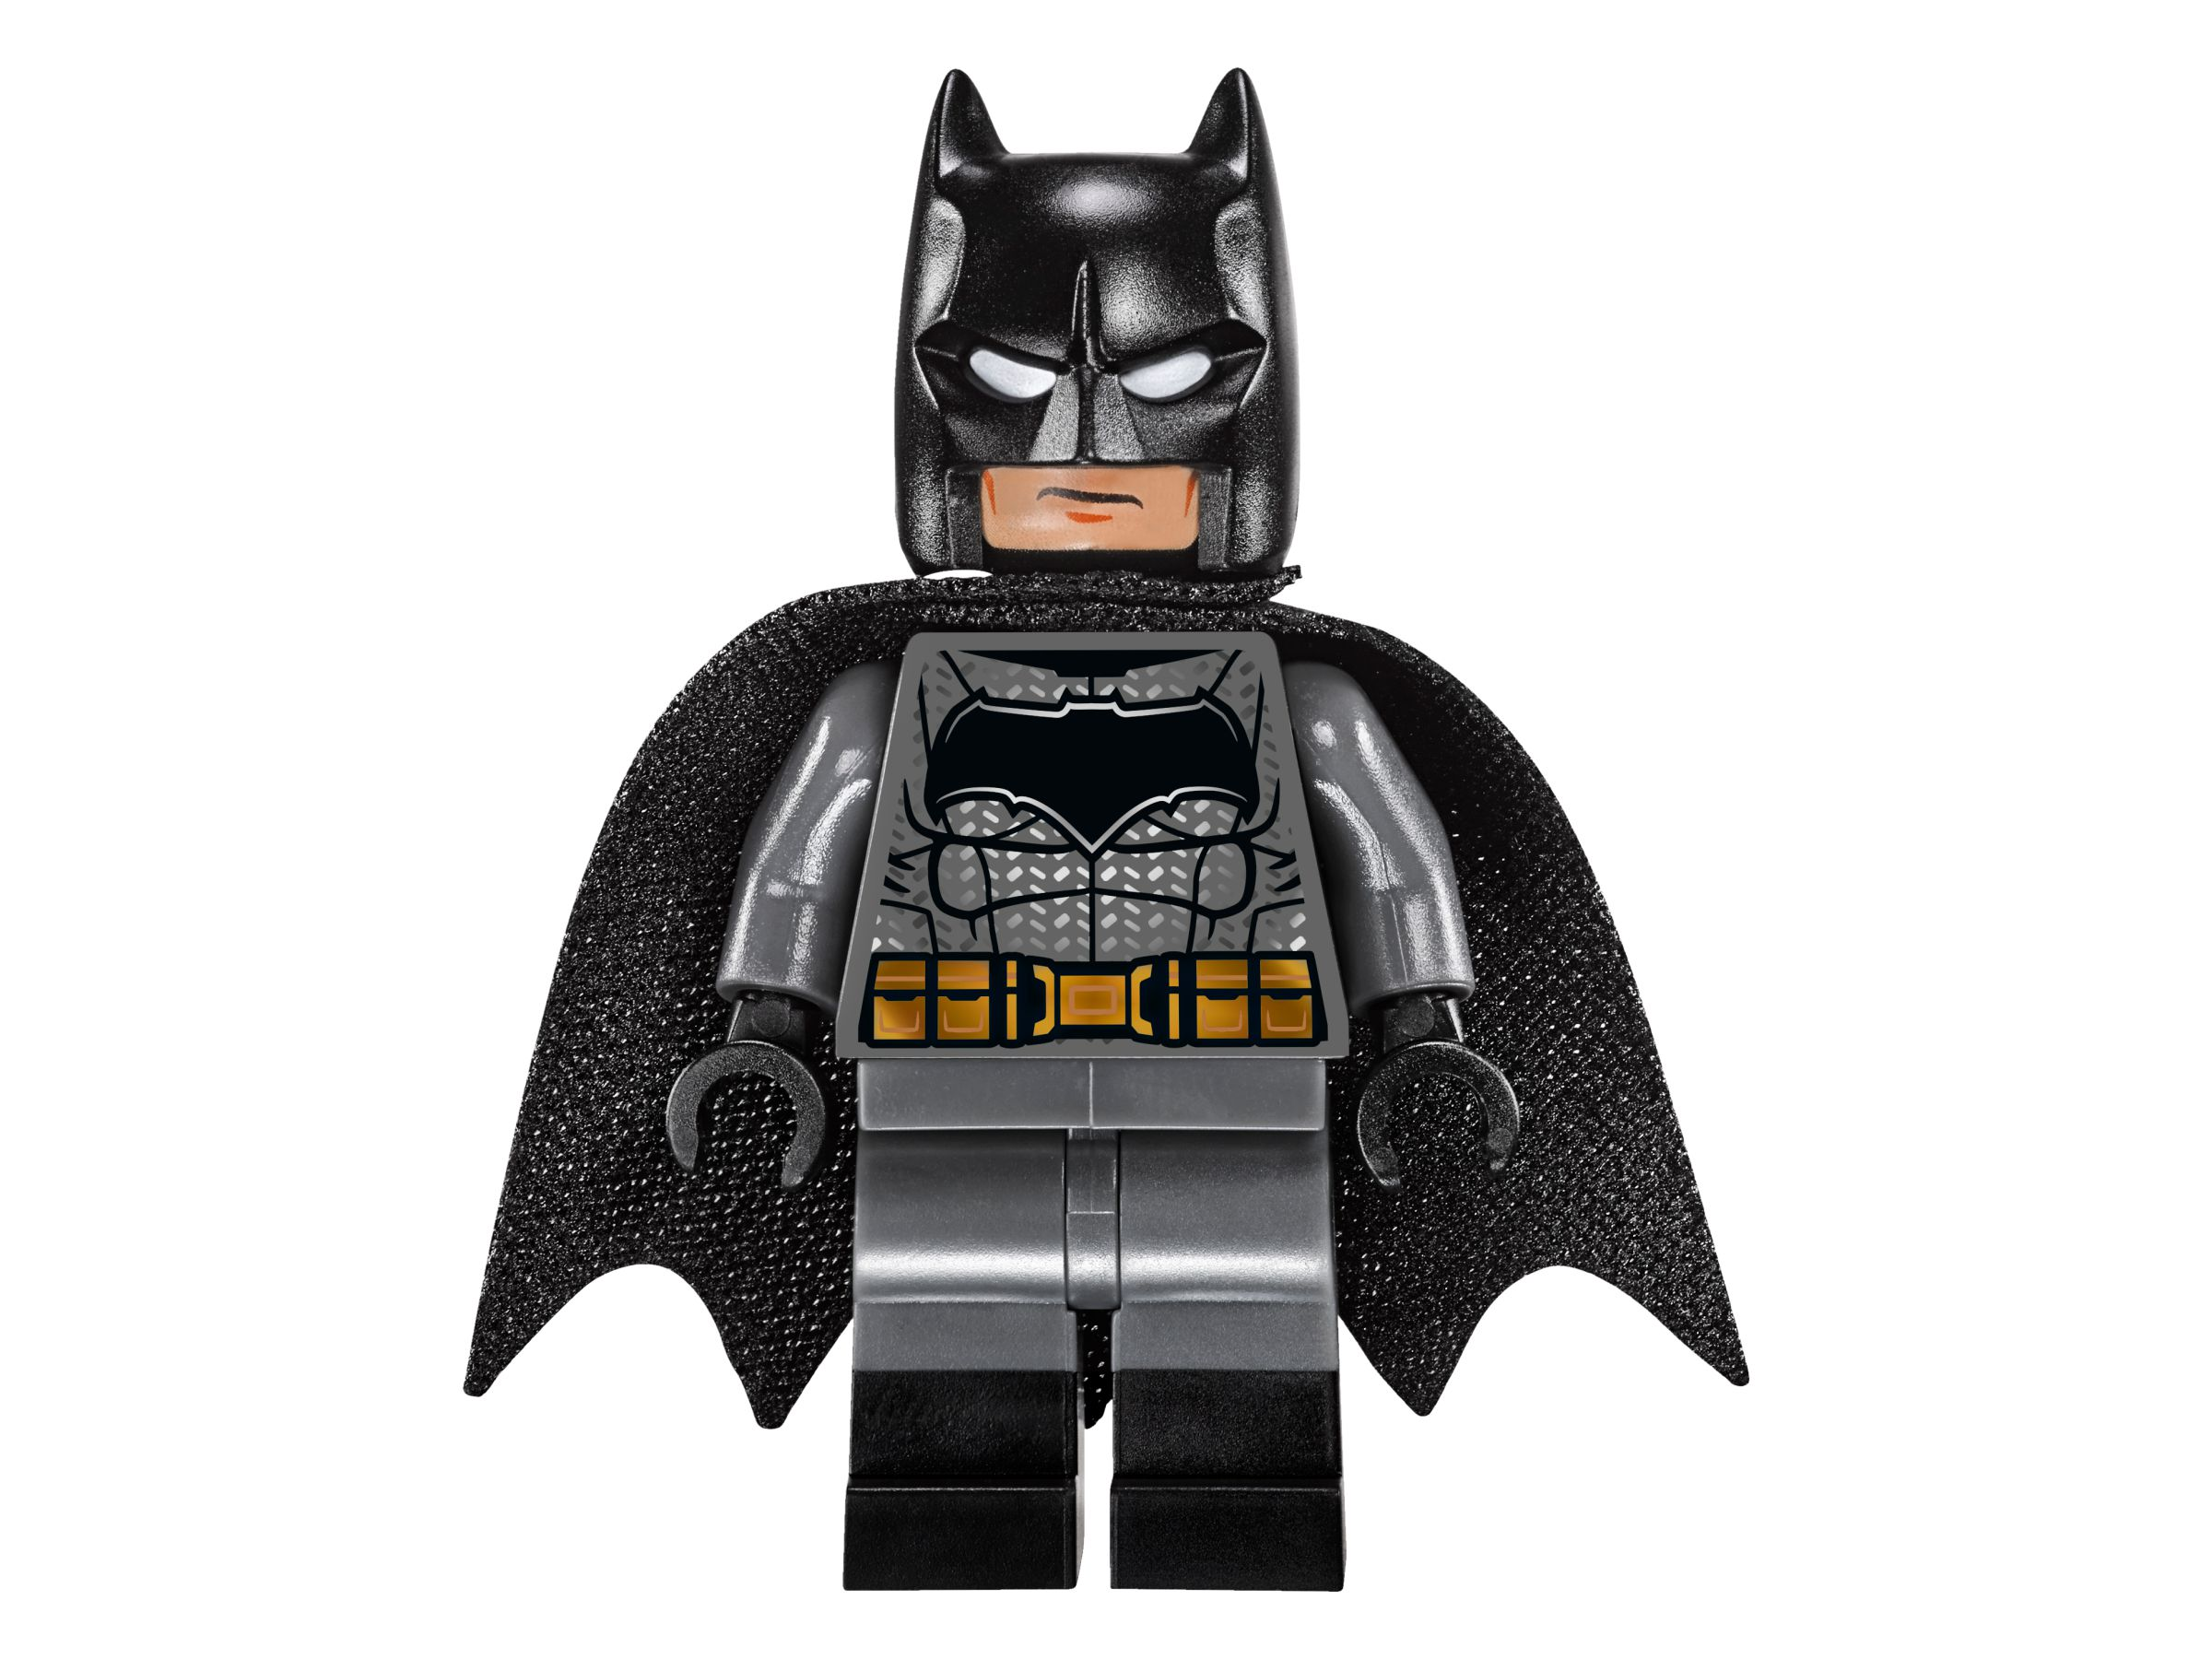 LEGO Super Heroes 76045 Kryptonit-Mission im Batmobil LEGO_76045_alt9.jpg